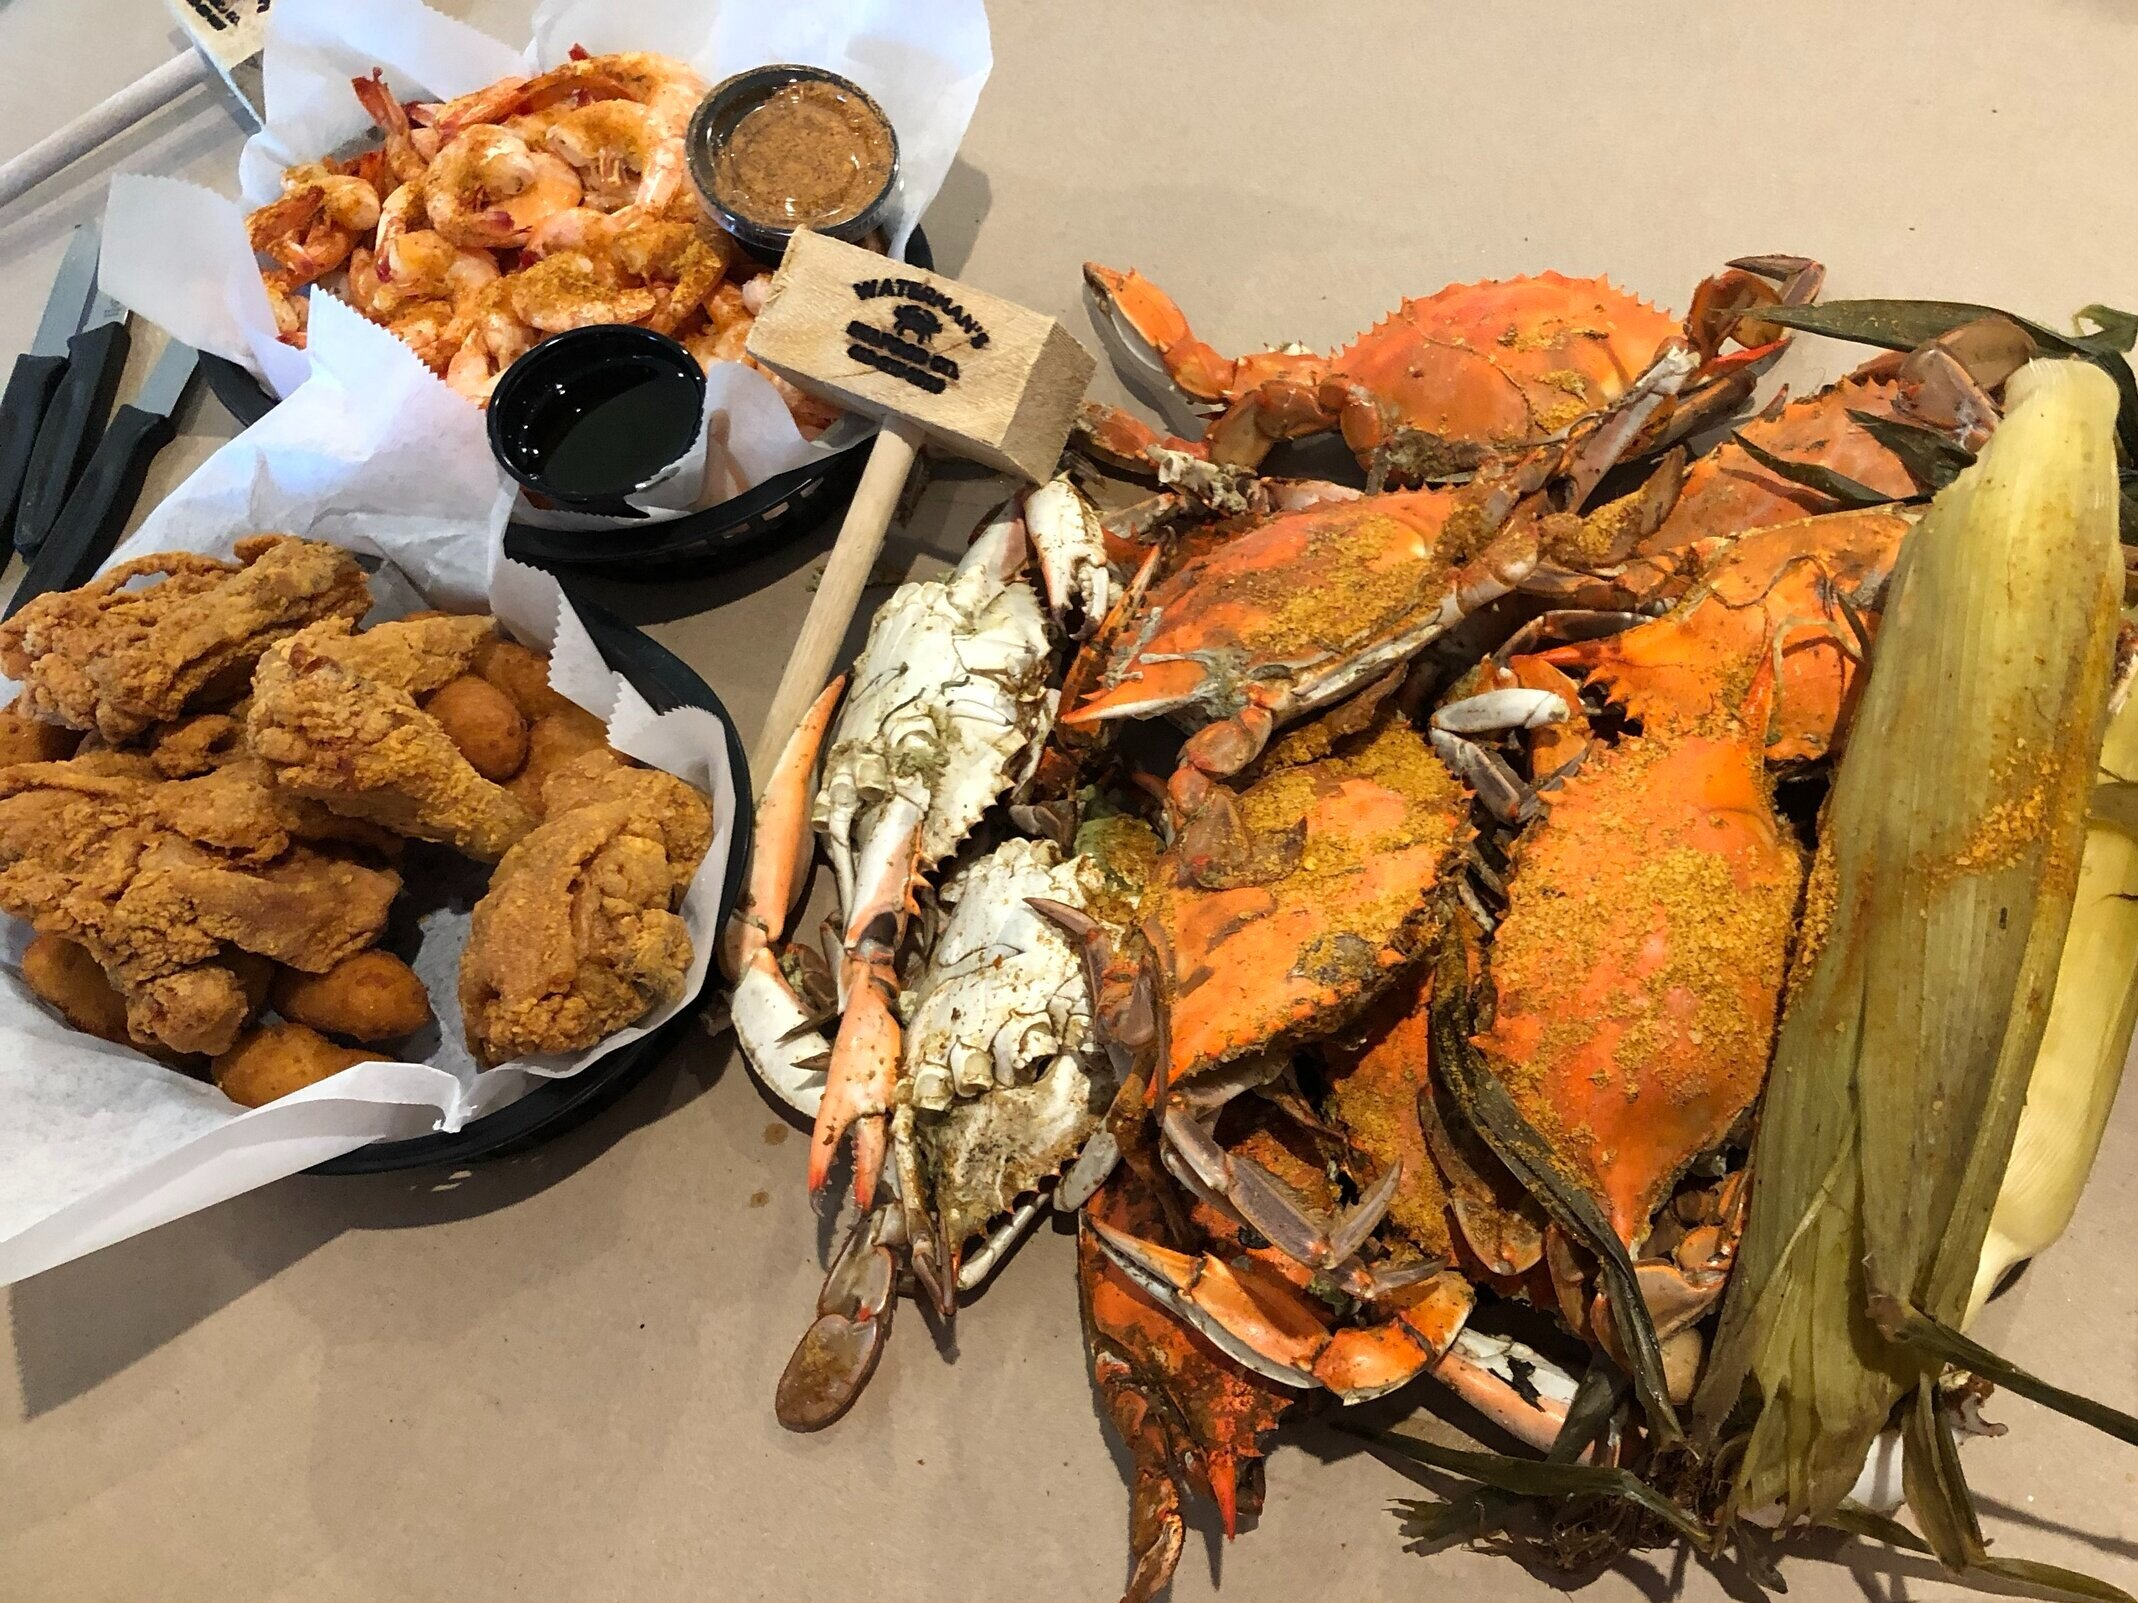 Maryland Blue Crab feast on our Food Bucket List.